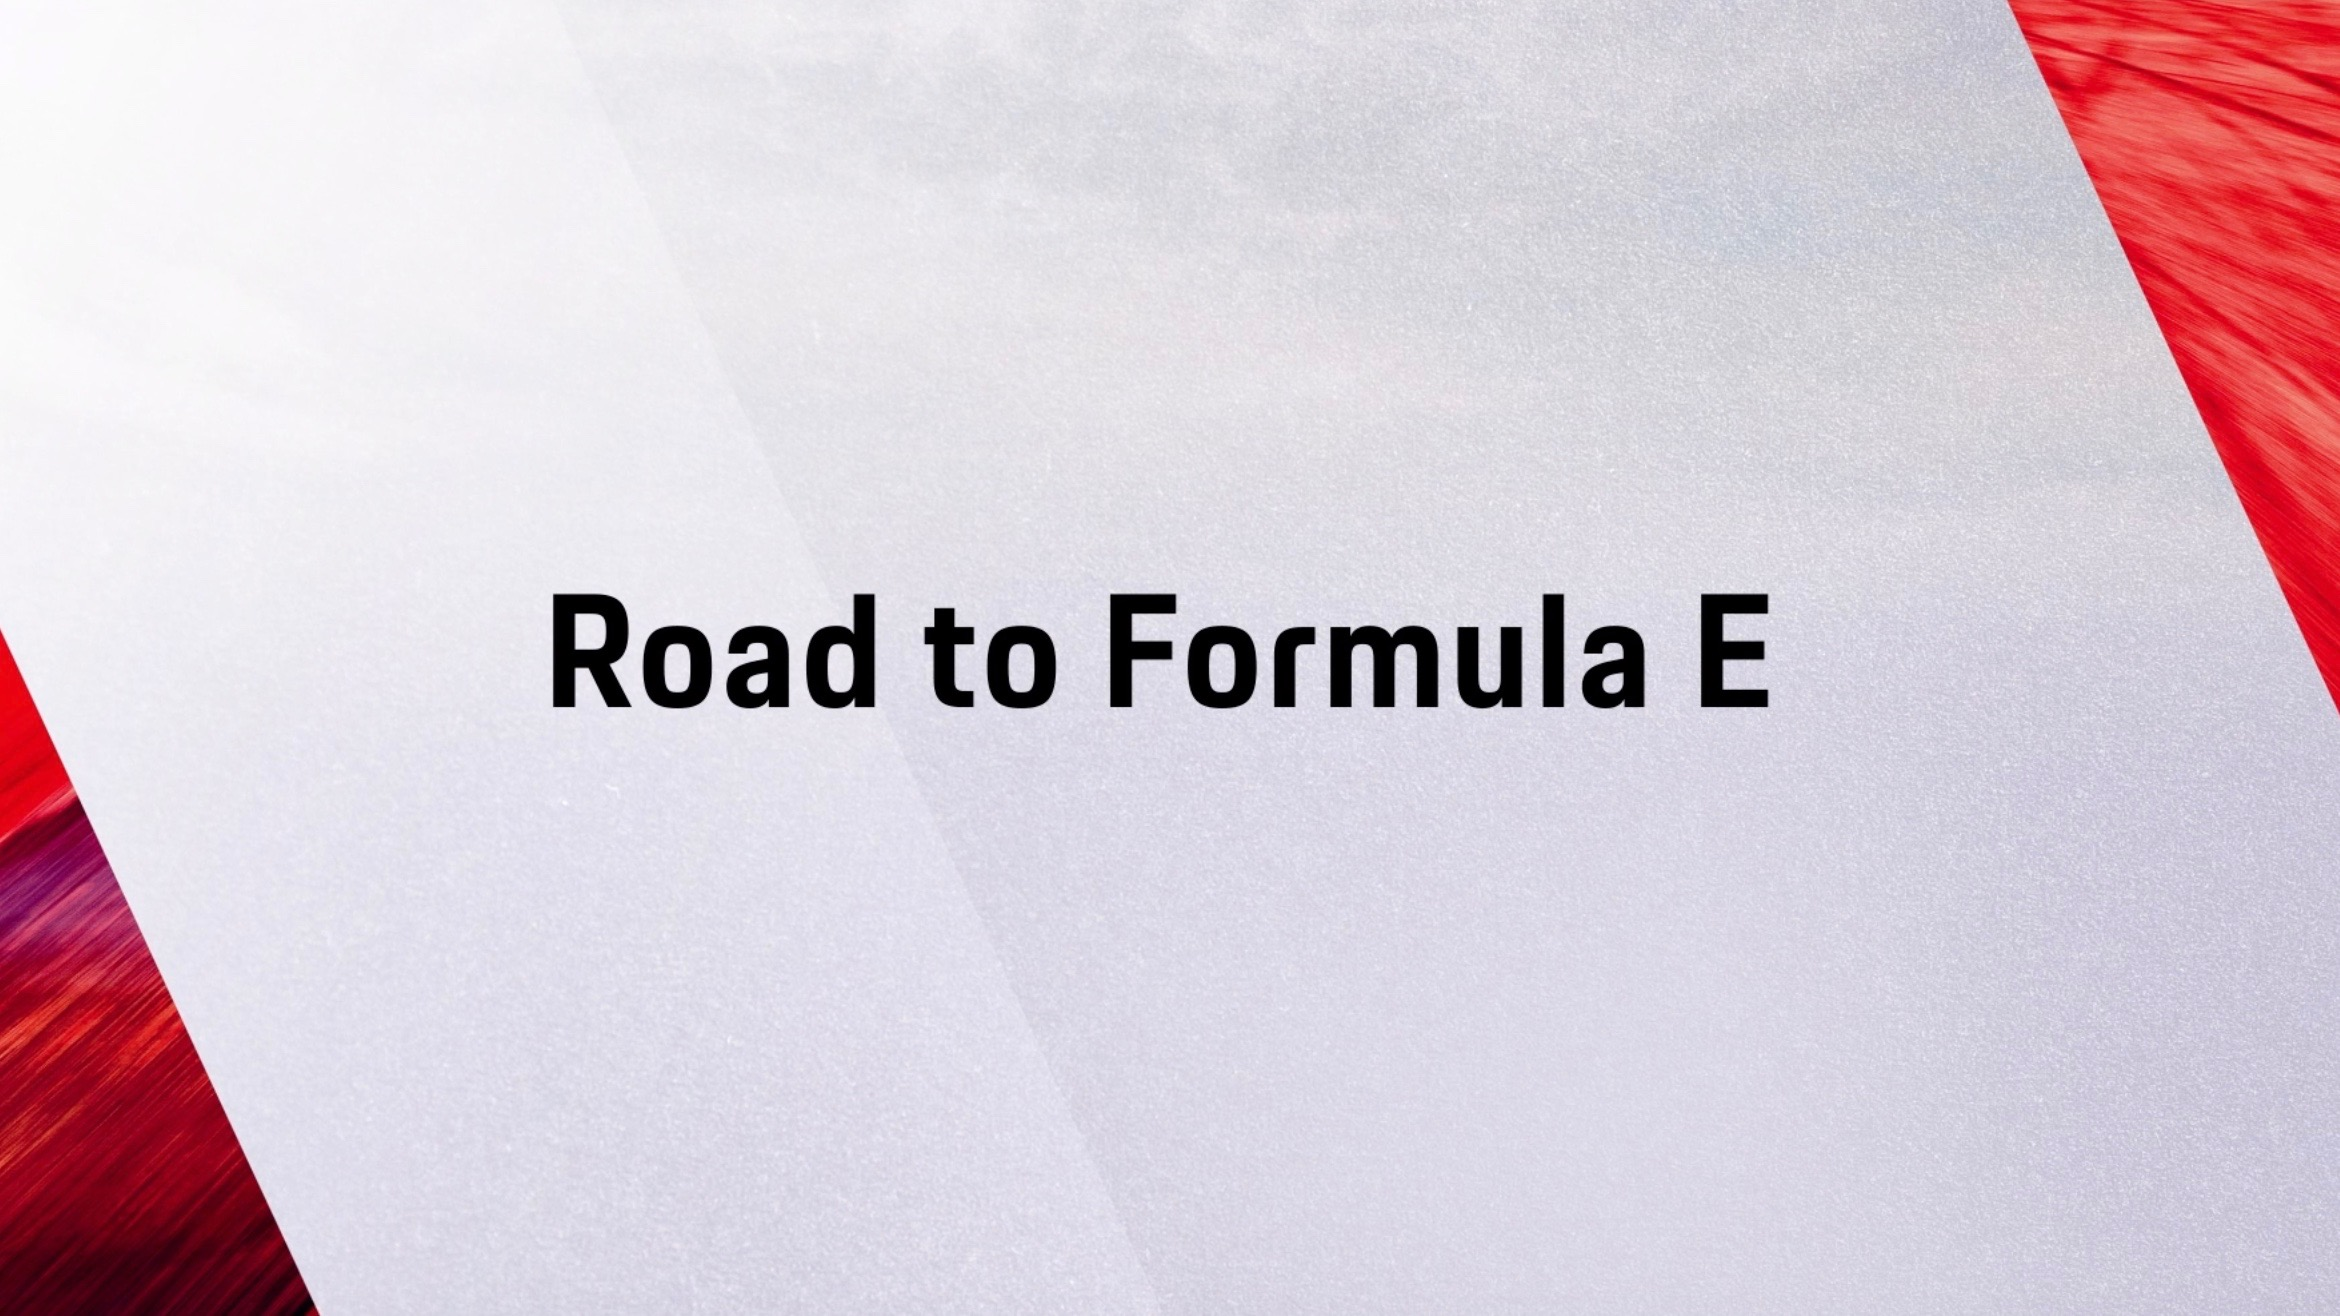 Die Road to Formula E als Animation